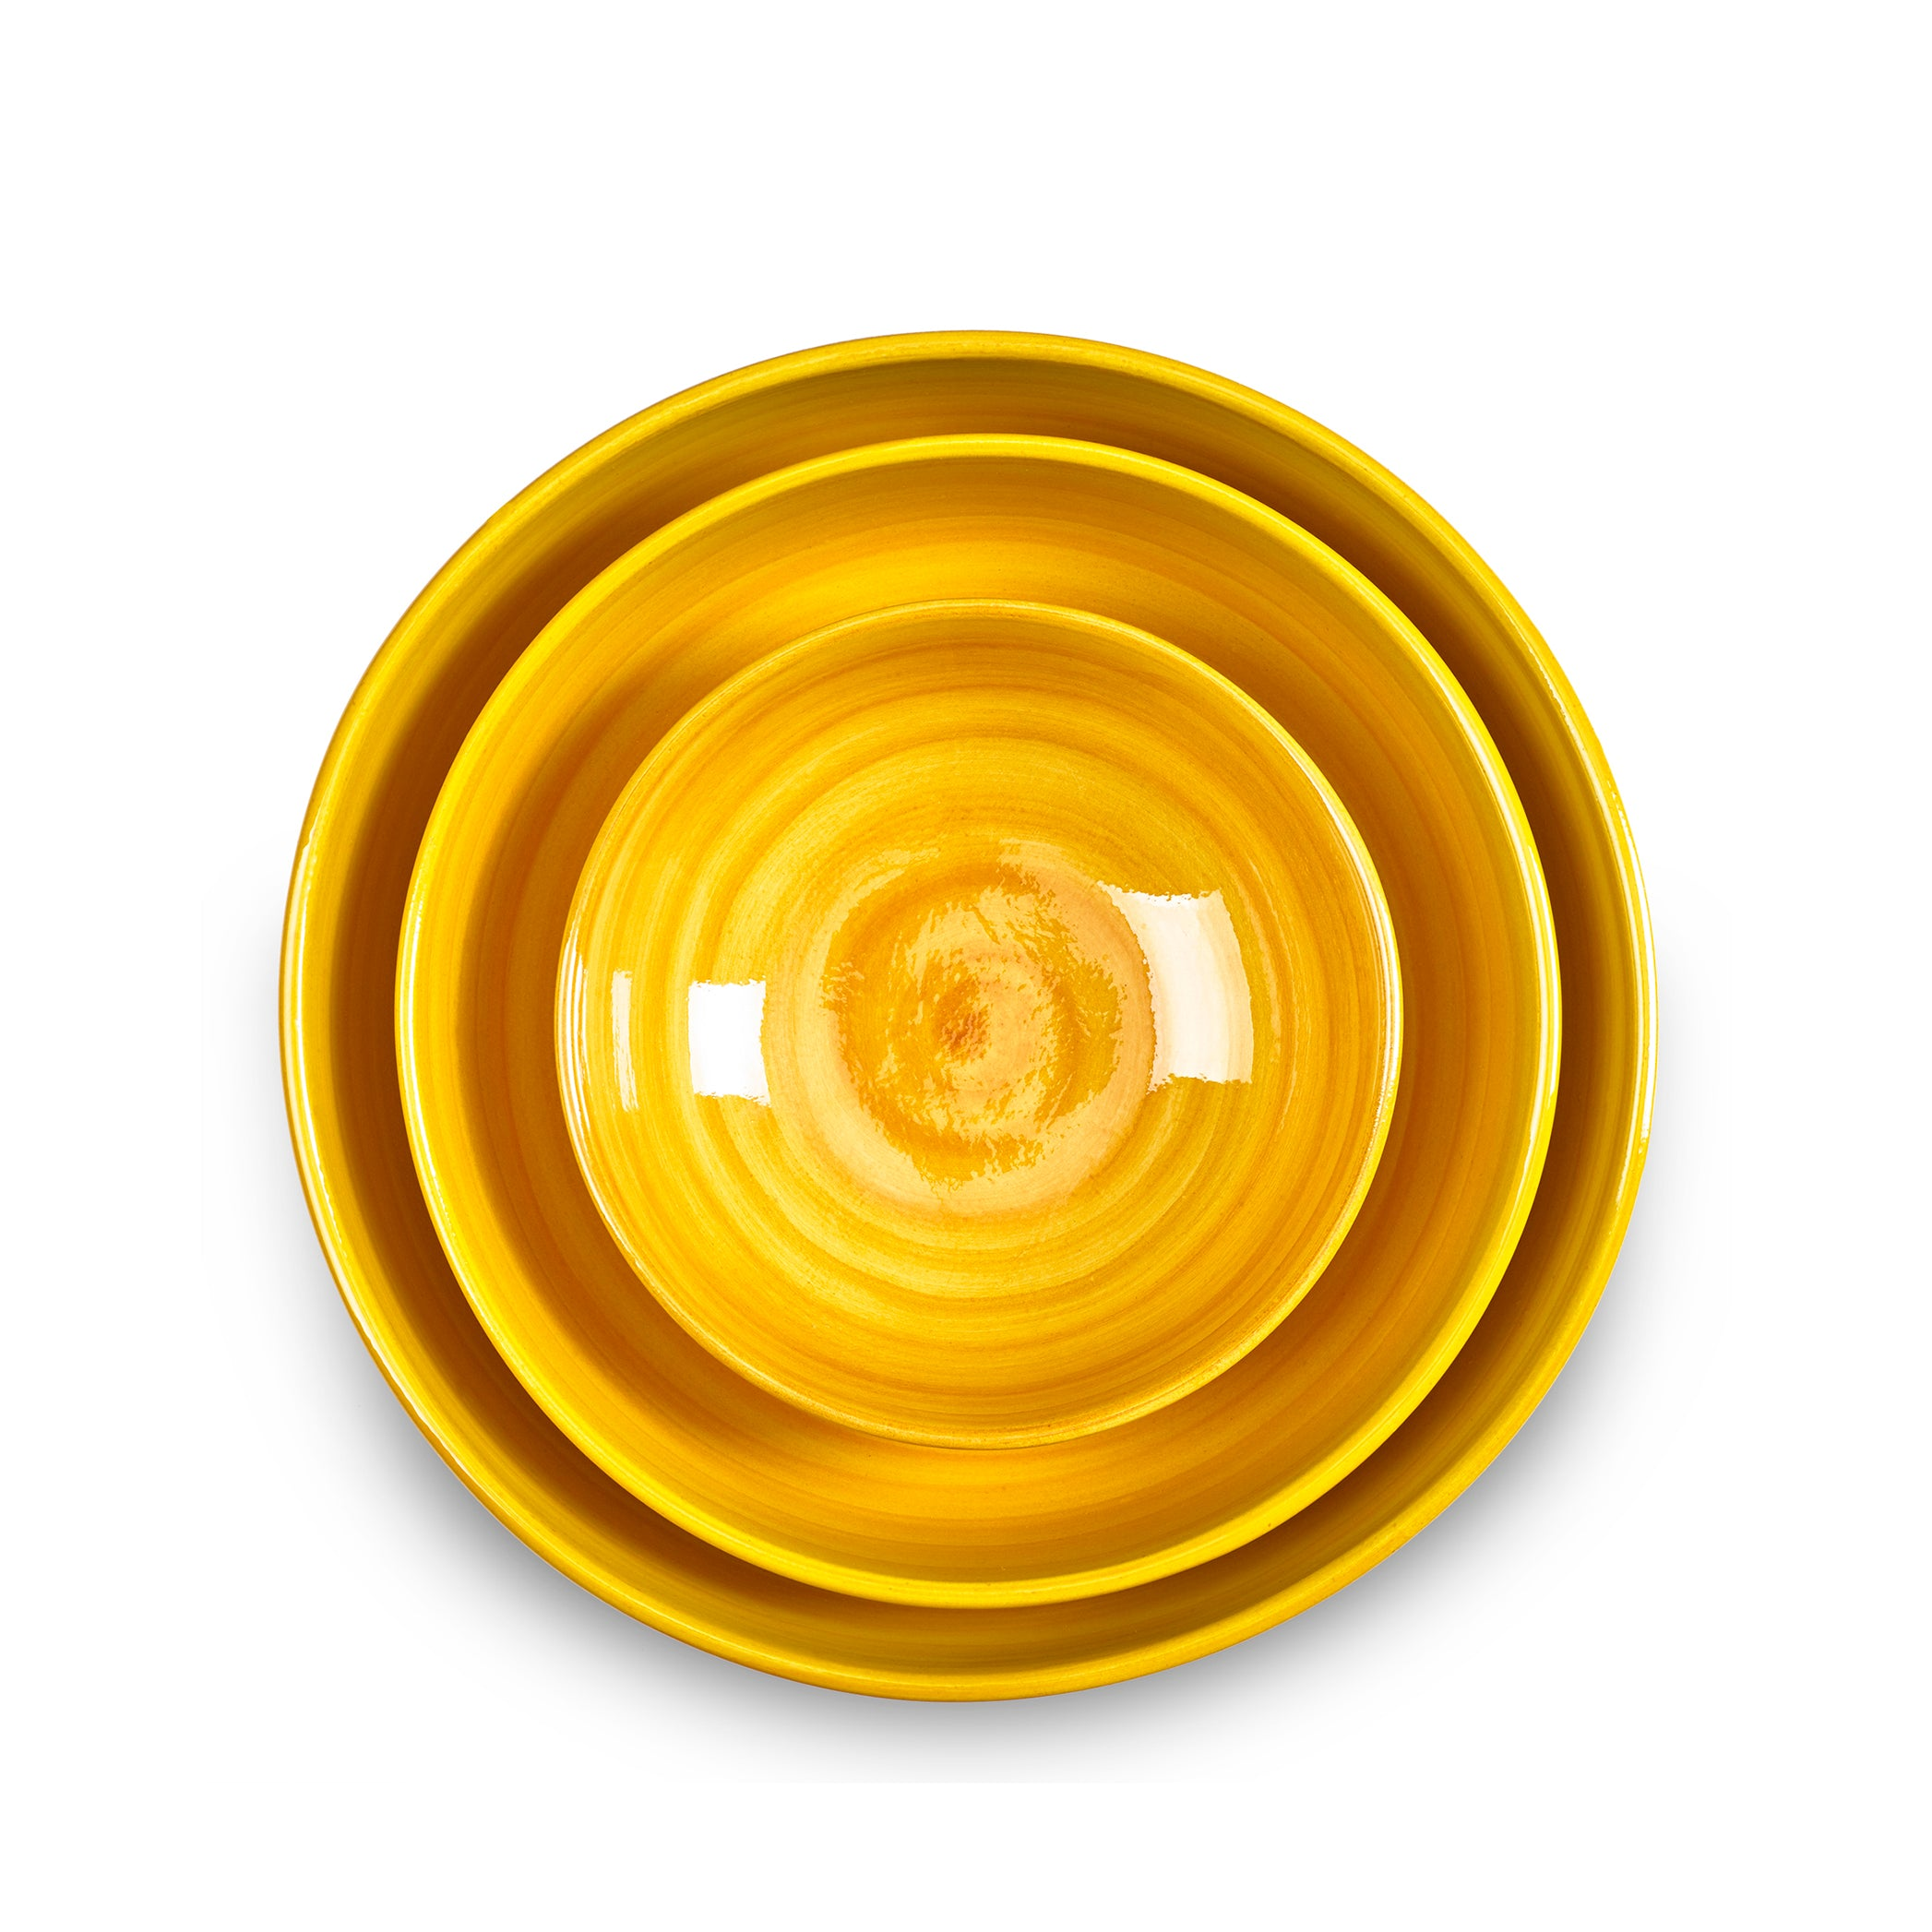 "S&B ""La Couronne"" 30cm Ceramic Large Serving Bowl in Yellow"